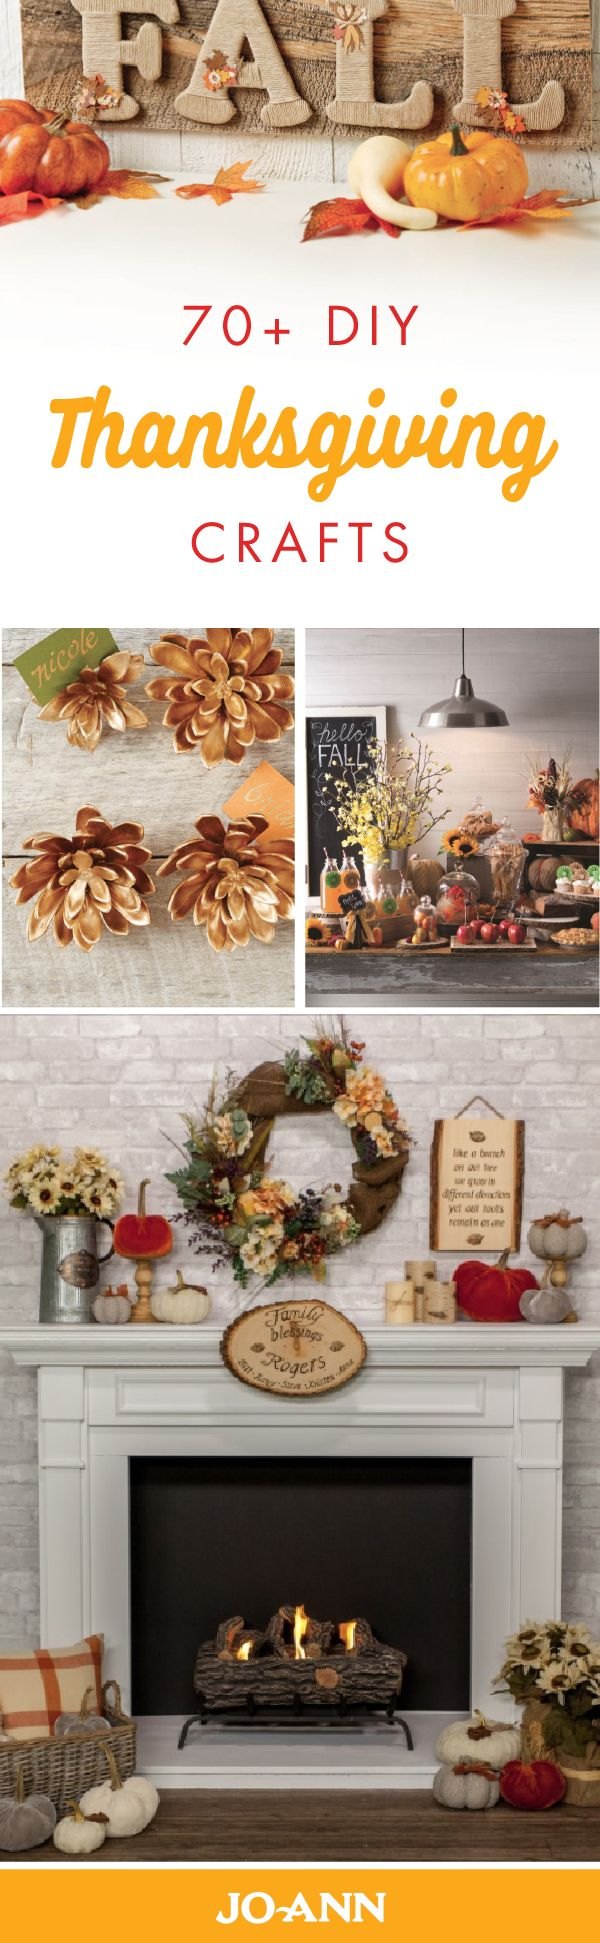 Diy thanksgiving wall decor - This Collection Of 70 Diy Thanksgiving Crafts Is The Perfect Excuse To Spruce Up Your